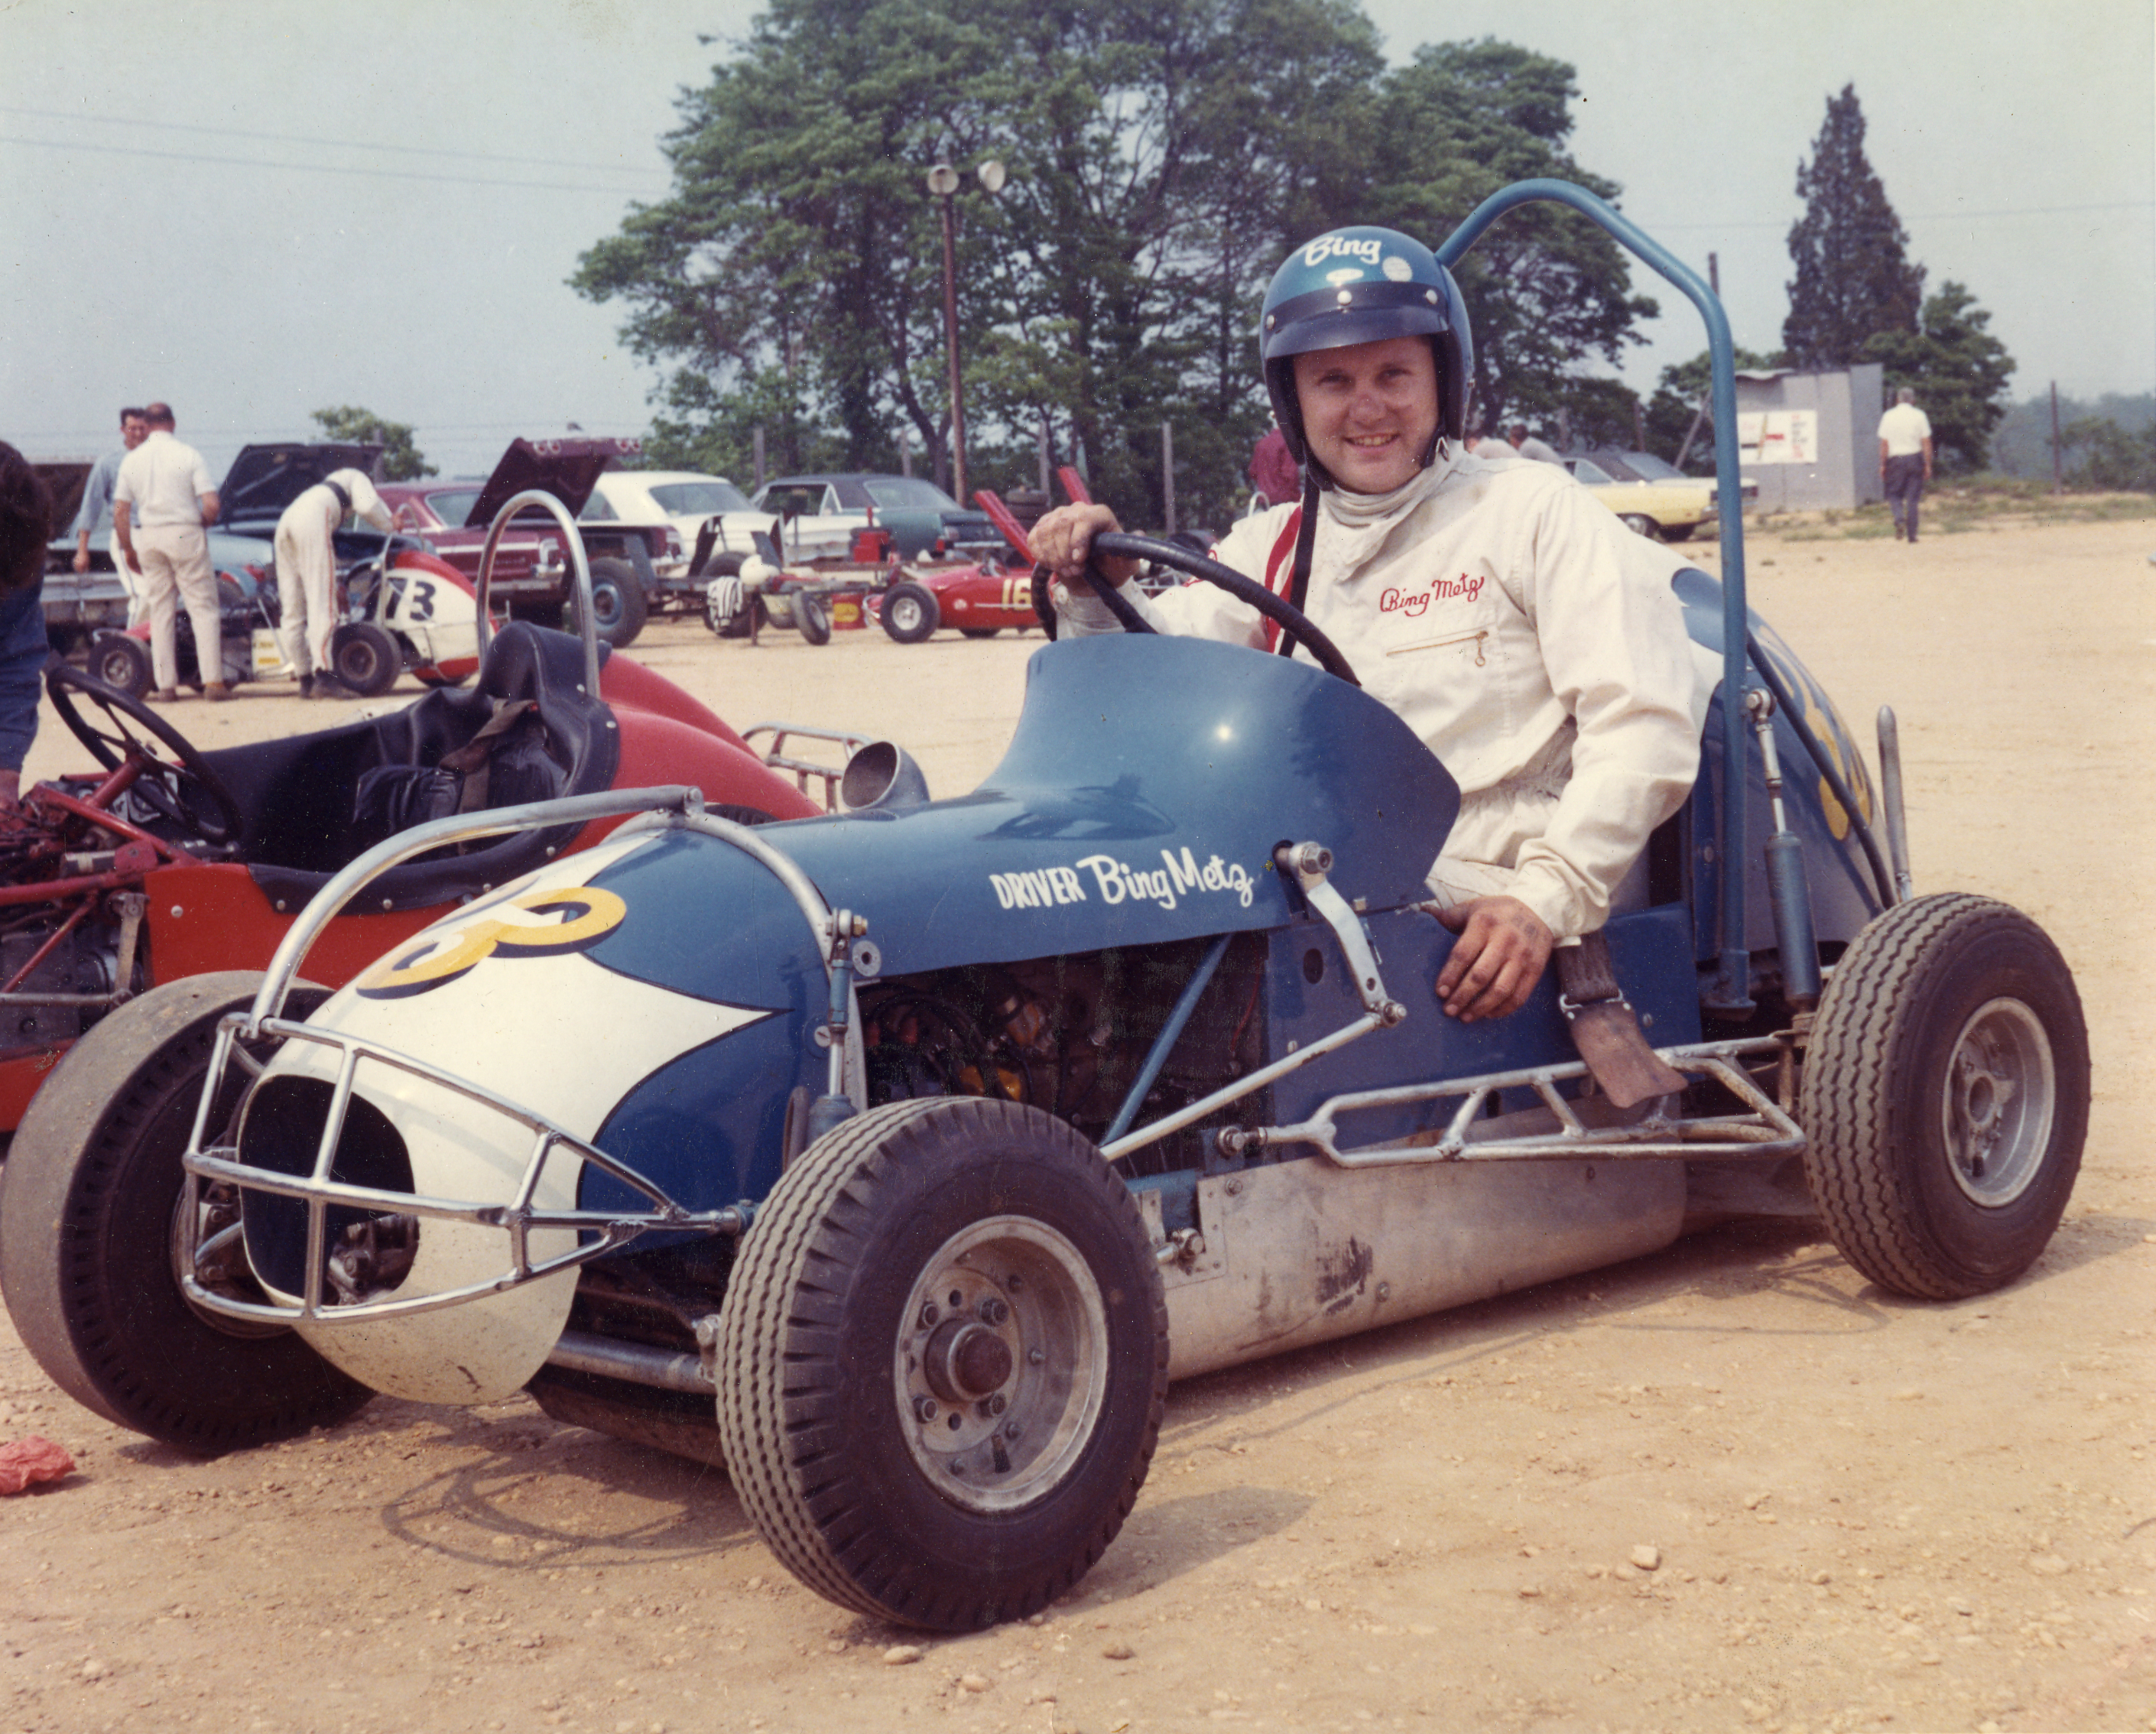 Bing in his #33 (the Atlantic City indoor winning car) at Fort Dix, NJ Speedway in 1969. Source: Eastern Auto Racing Historical Society archives